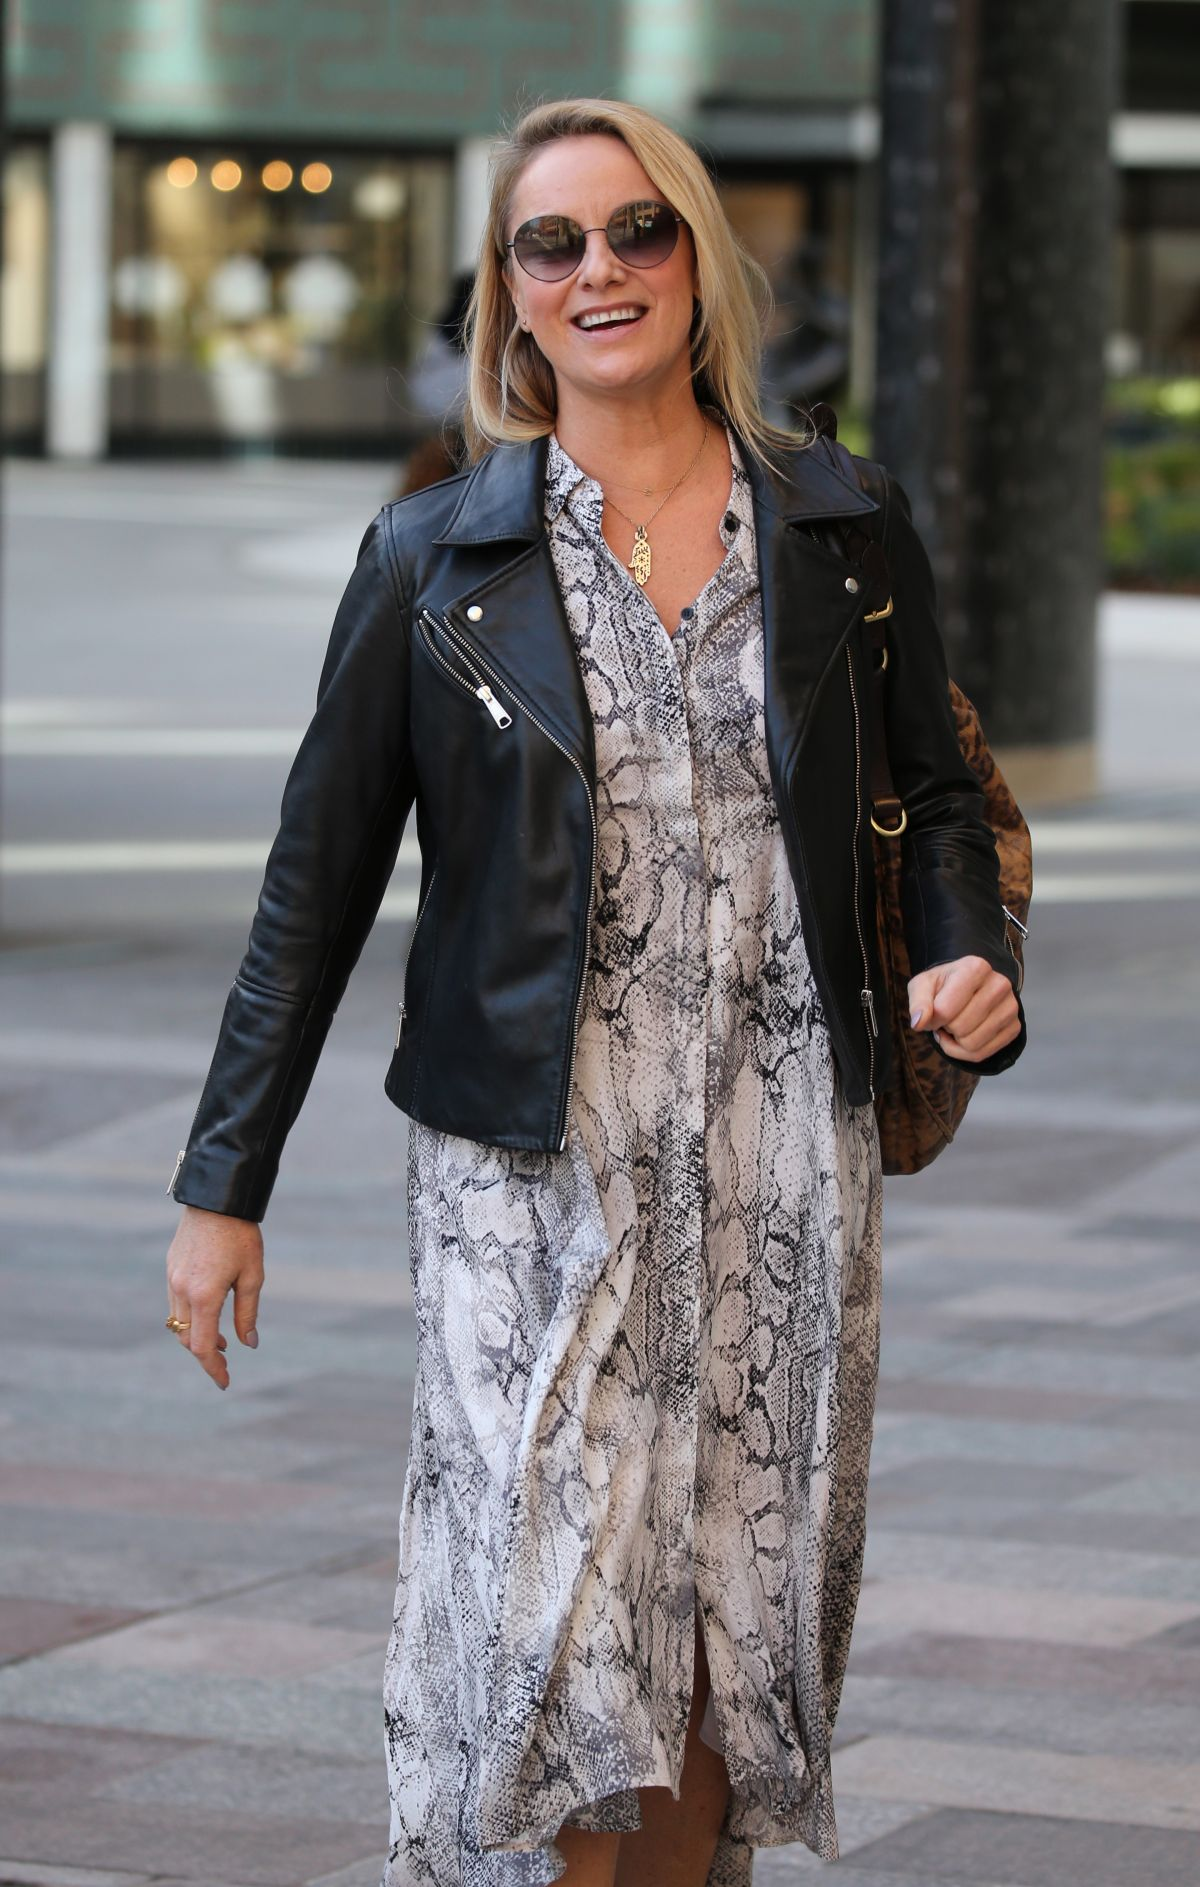 tamzin outhwaite - photo #35